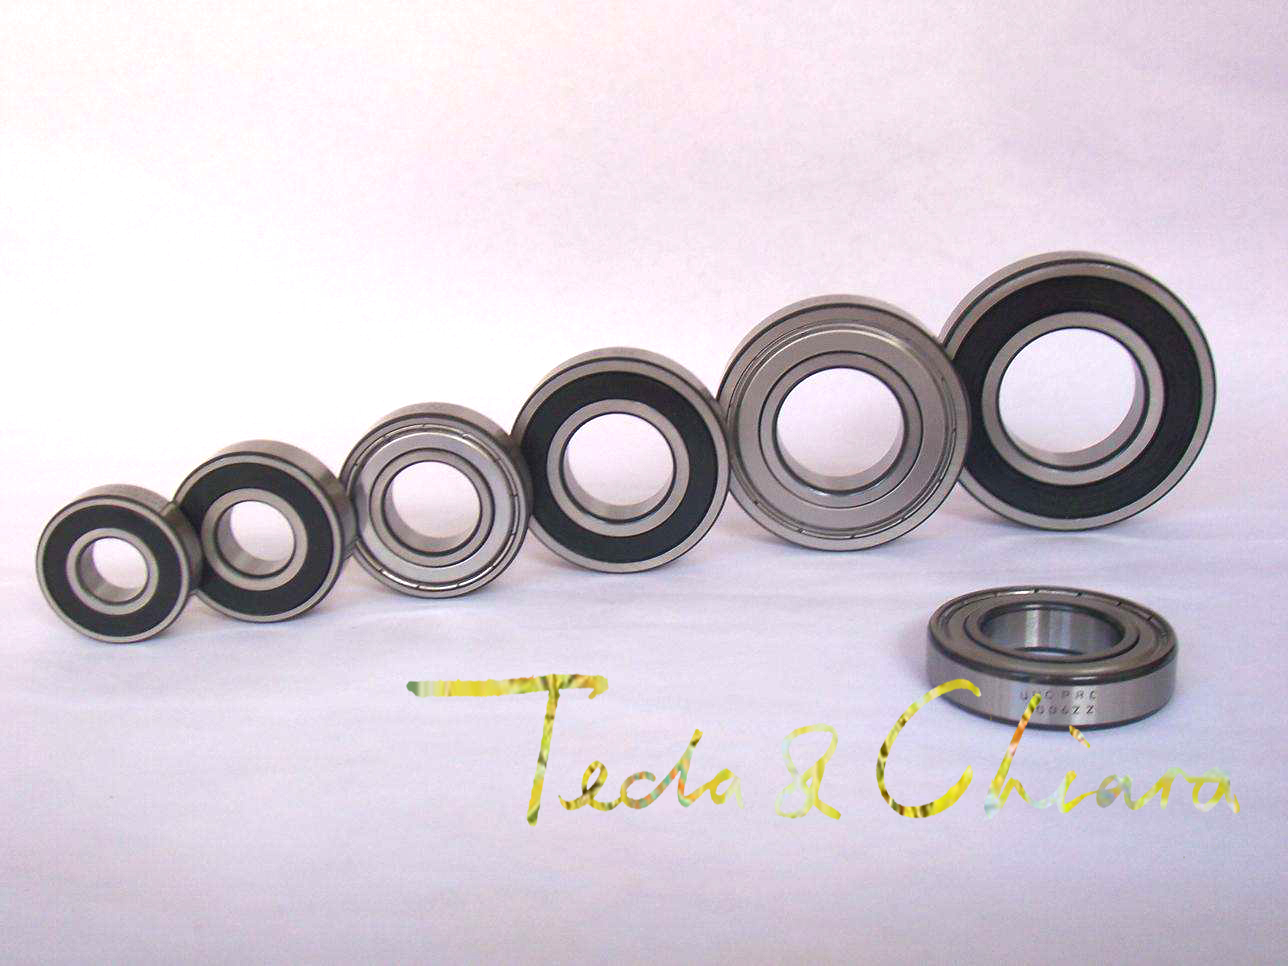 6000 6000ZZ 6000RS 6000-2Z 6000Z 6000-2RS ZZ RS RZ 2RZ Deep Groove Ball Bearings 10 x 26 x 8mm6000 6000ZZ 6000RS 6000-2Z 6000Z 6000-2RS ZZ RS RZ 2RZ Deep Groove Ball Bearings 10 x 26 x 8mm